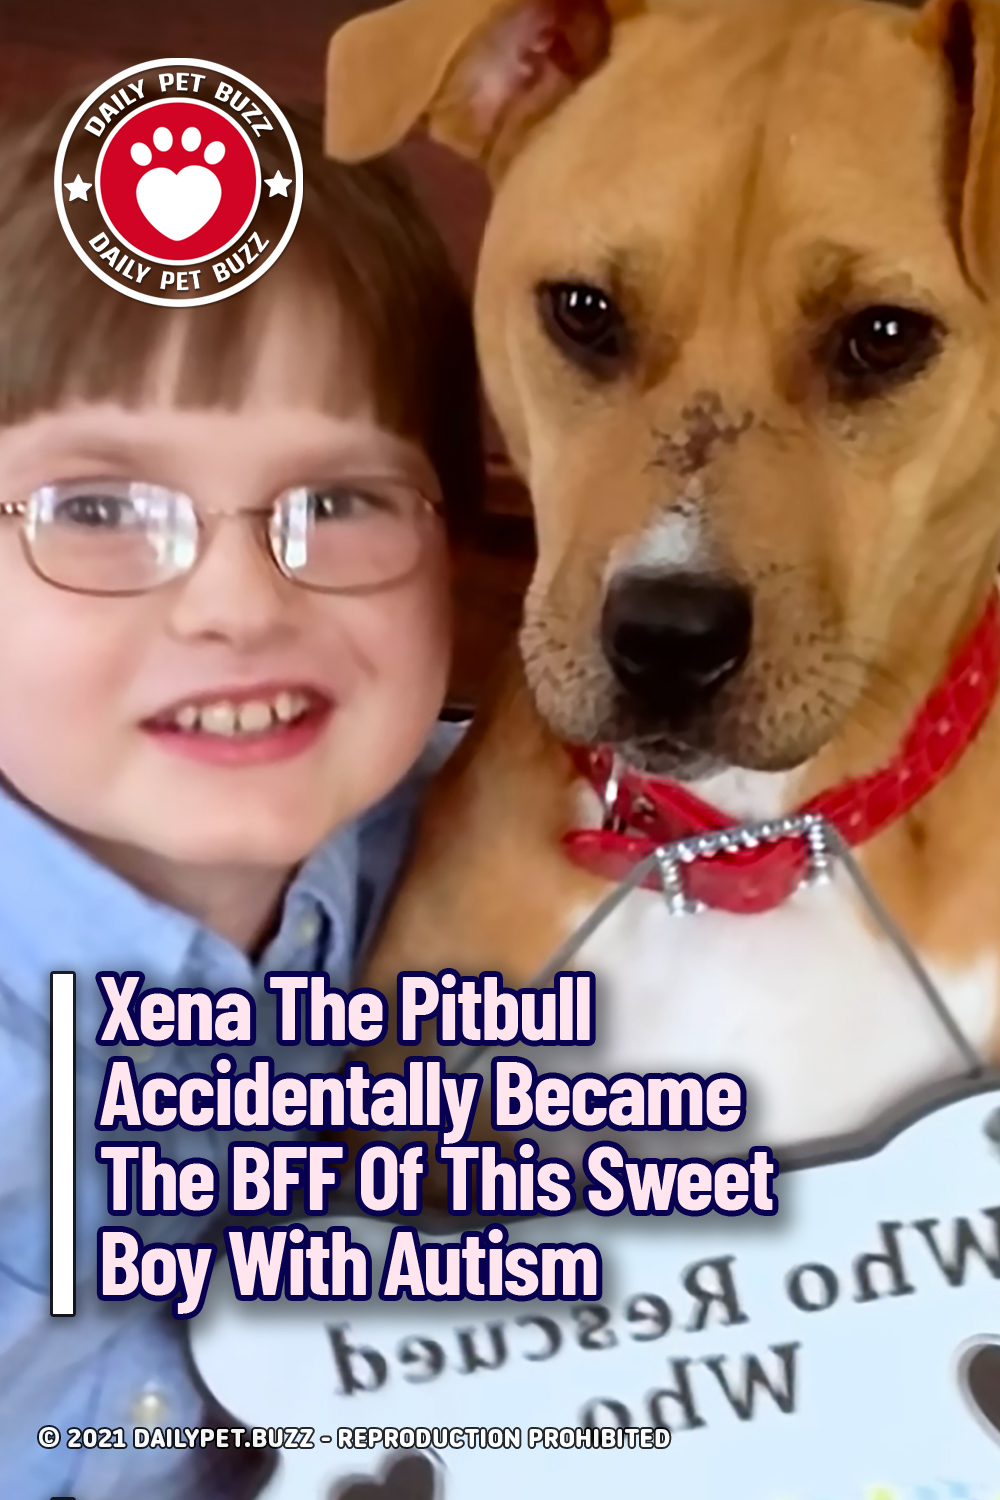 Xena The Pitbull Accidentally Became The BFF Of This Sweet Boy With Autism